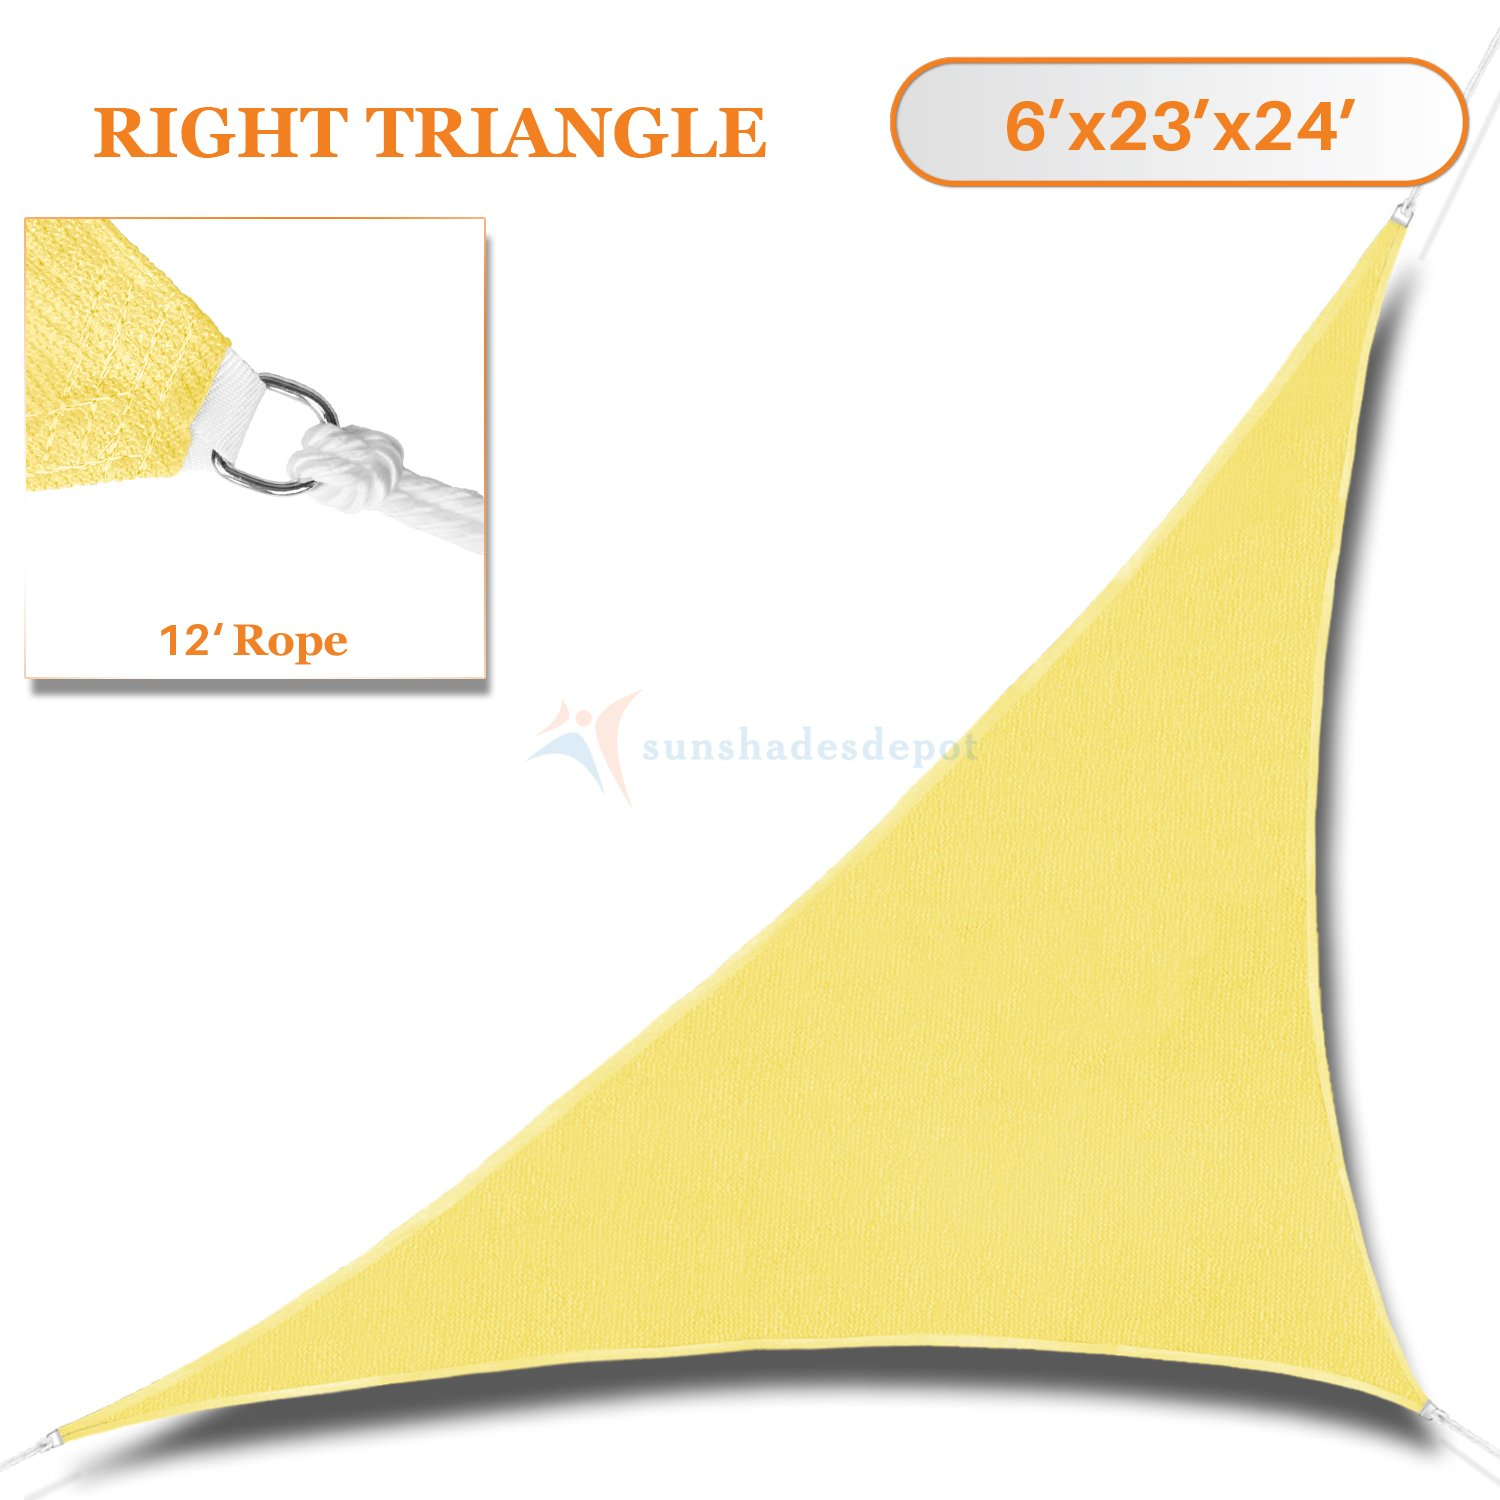 Sunshades Depot 6' x 23' x 24' Canary yellow ( Light Yellow) Sun Shade Sail 180 GSM HDPE Right Triangle Permeable Canopy Custom Size Available Commercial Standard